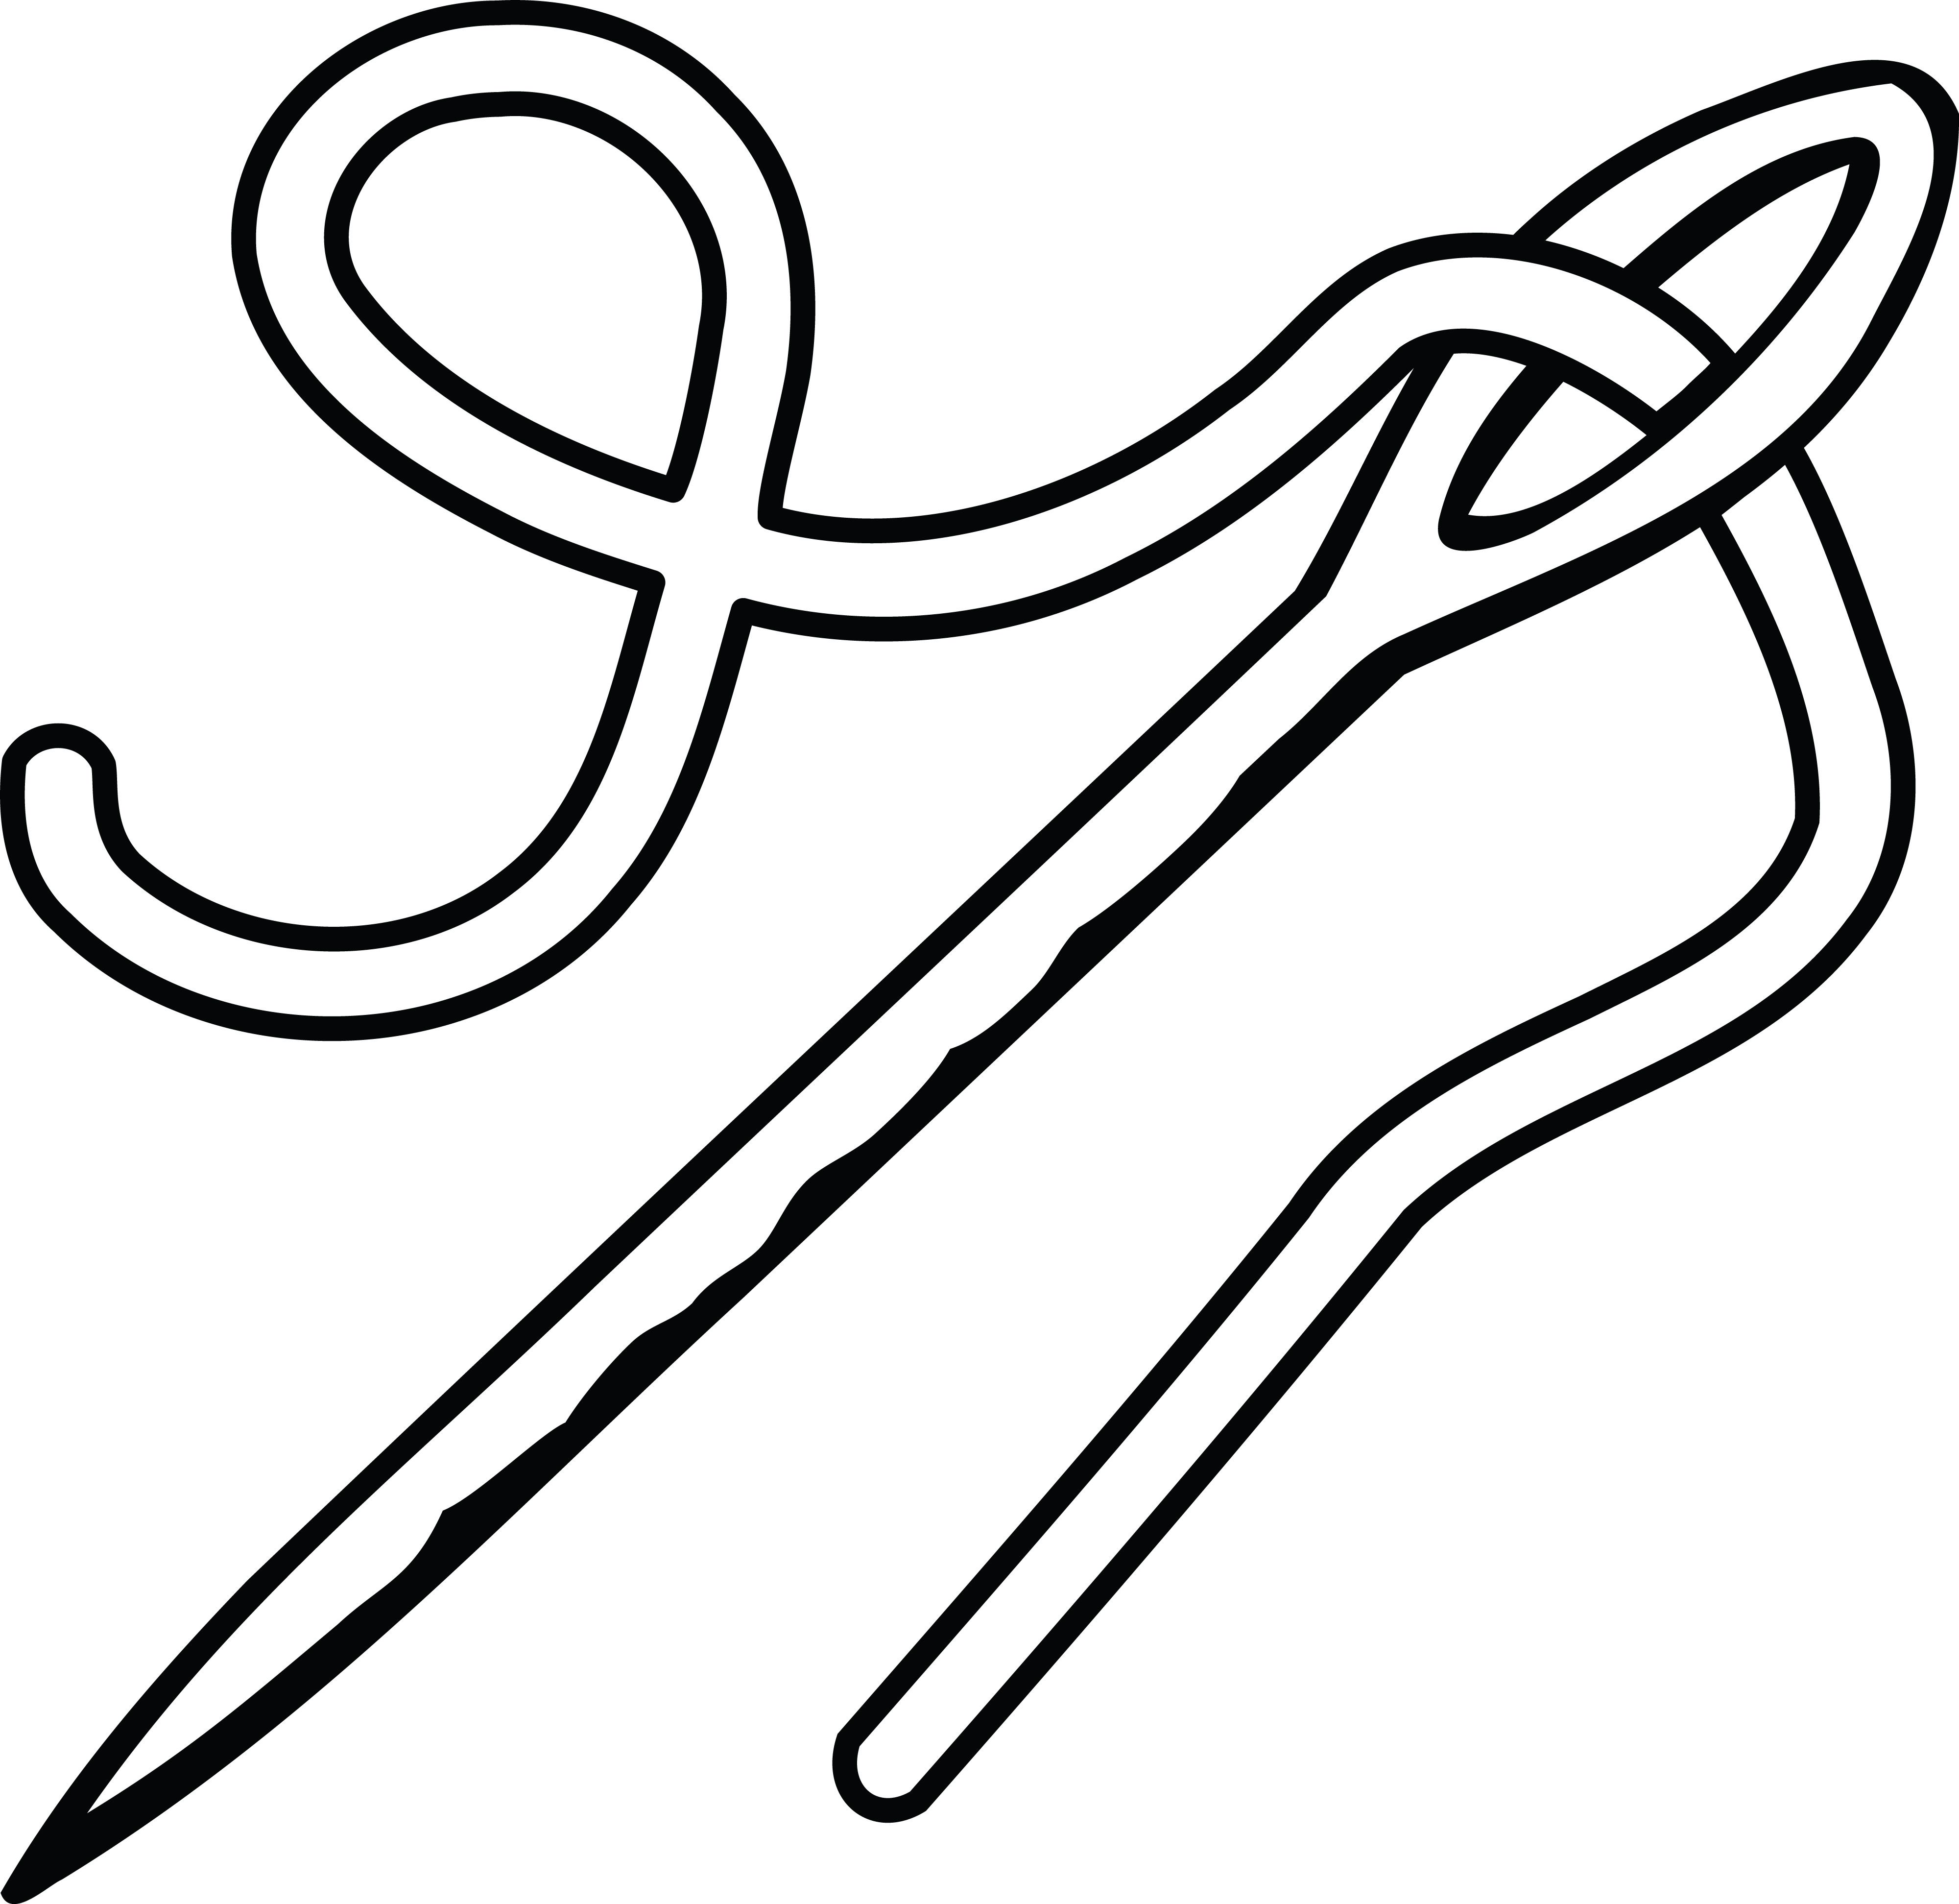 Free Clipart Of A needle and thread.